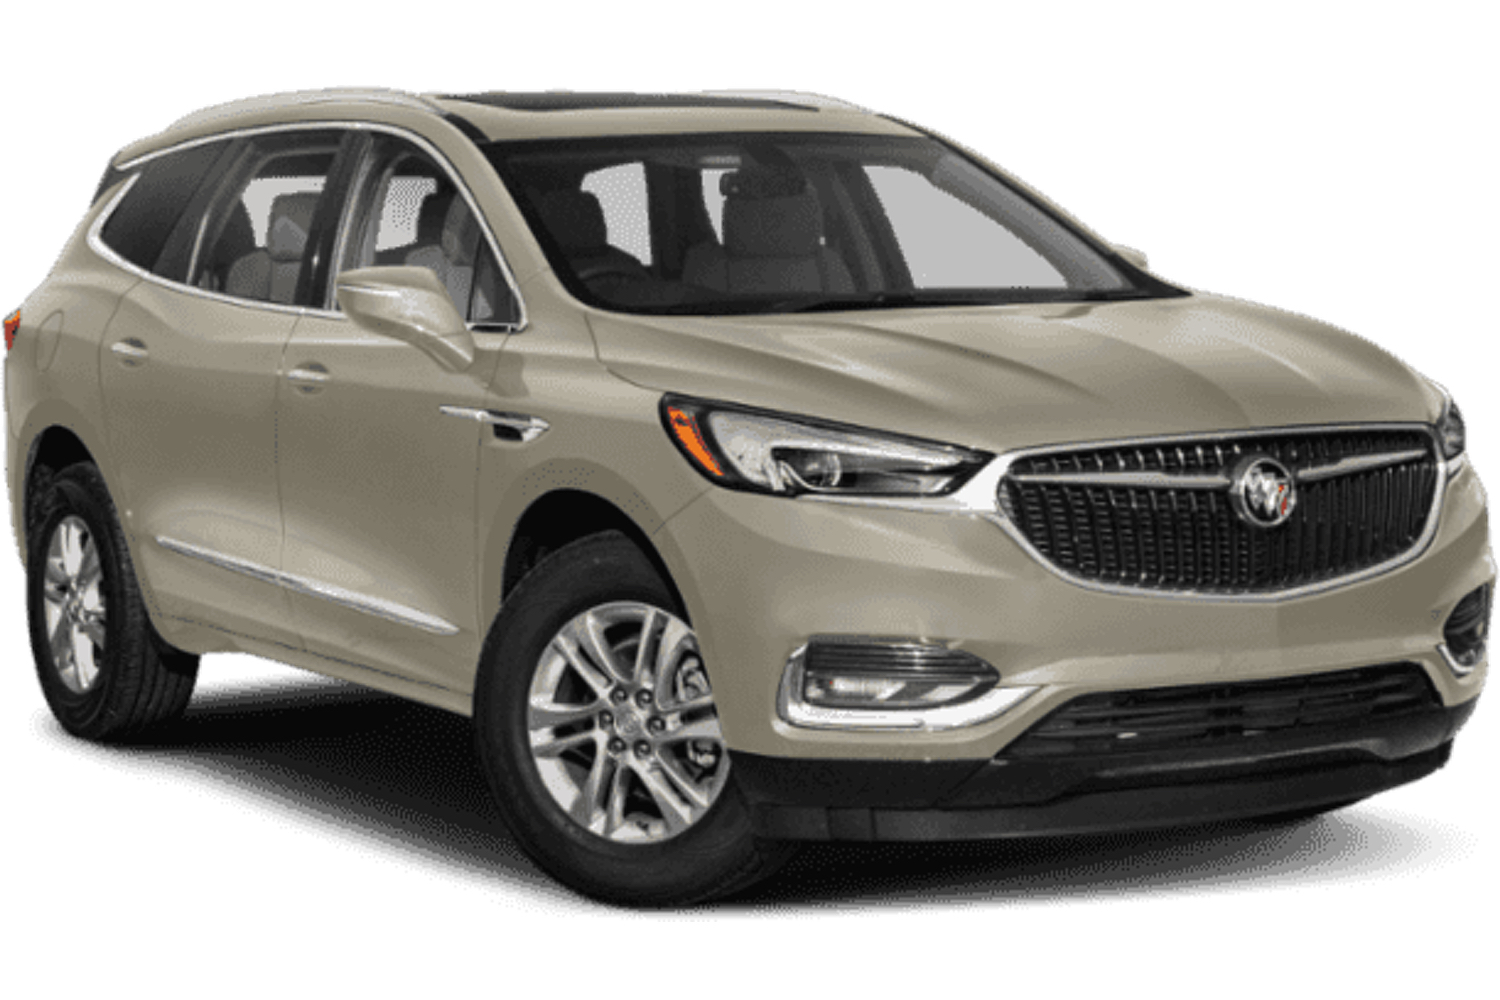 2020 Buick Enclave Gets New Champagne Gold Color | Gm Authority 2022 Buick Enclave Oil Capacity, Owner's Manual, Problems